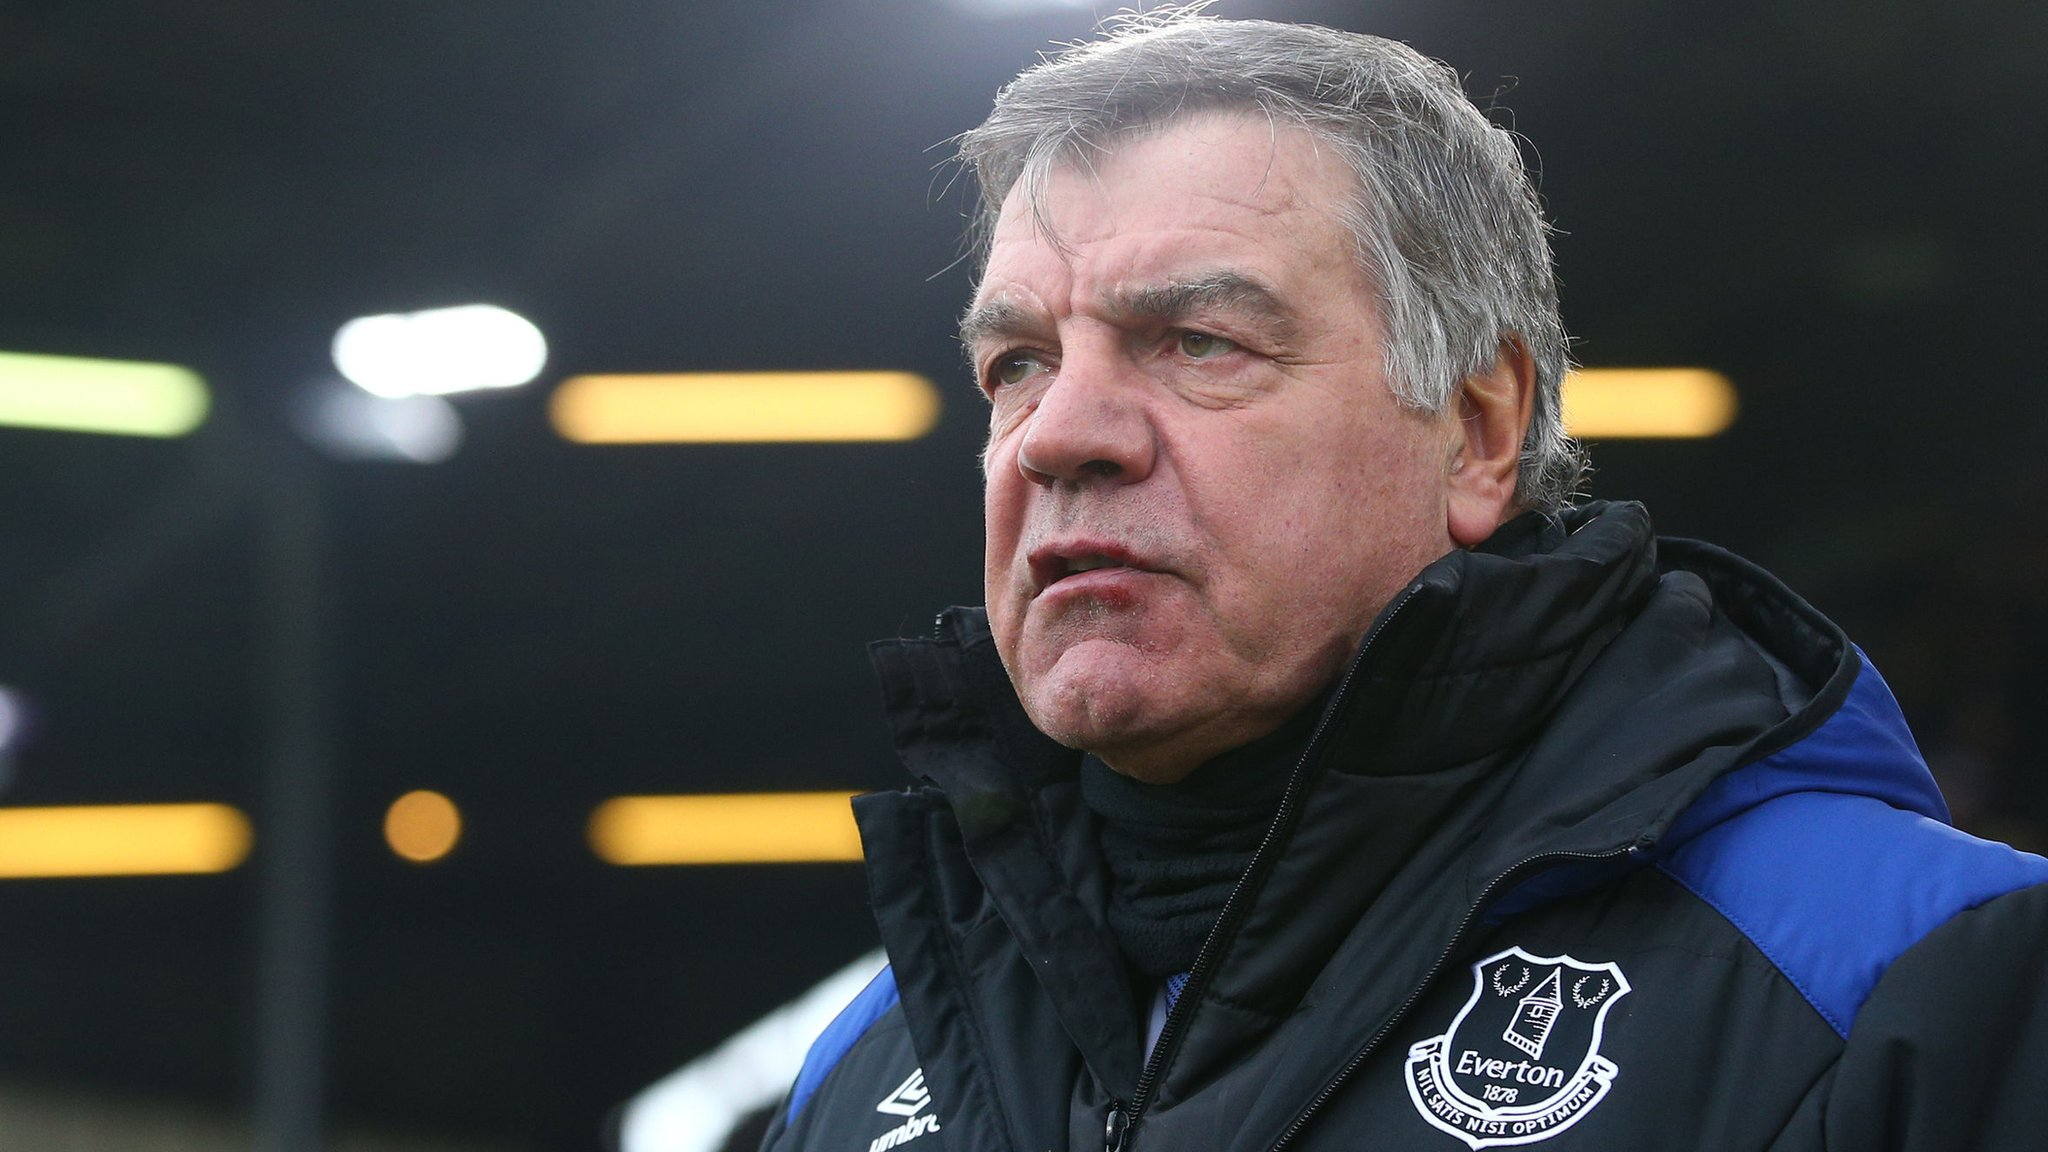 Everton: Sam Allardyce wants to be 'long-term appointment'